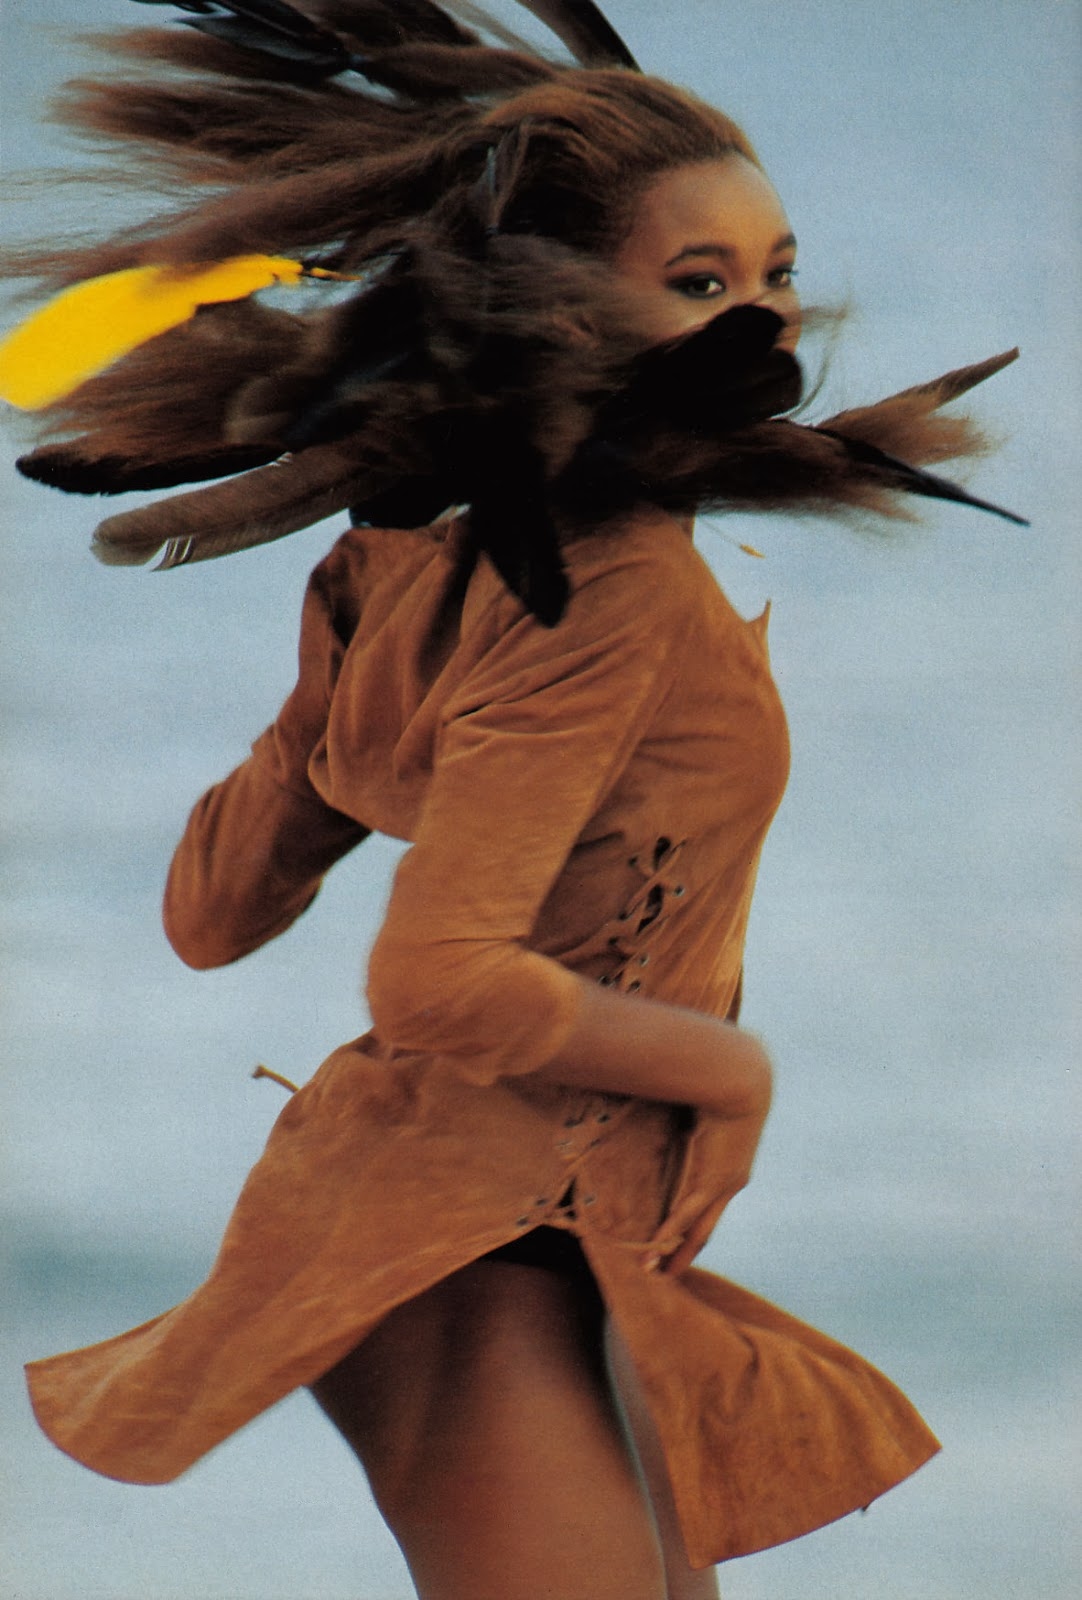 Beverly peele in collaboration with Hans Feurer